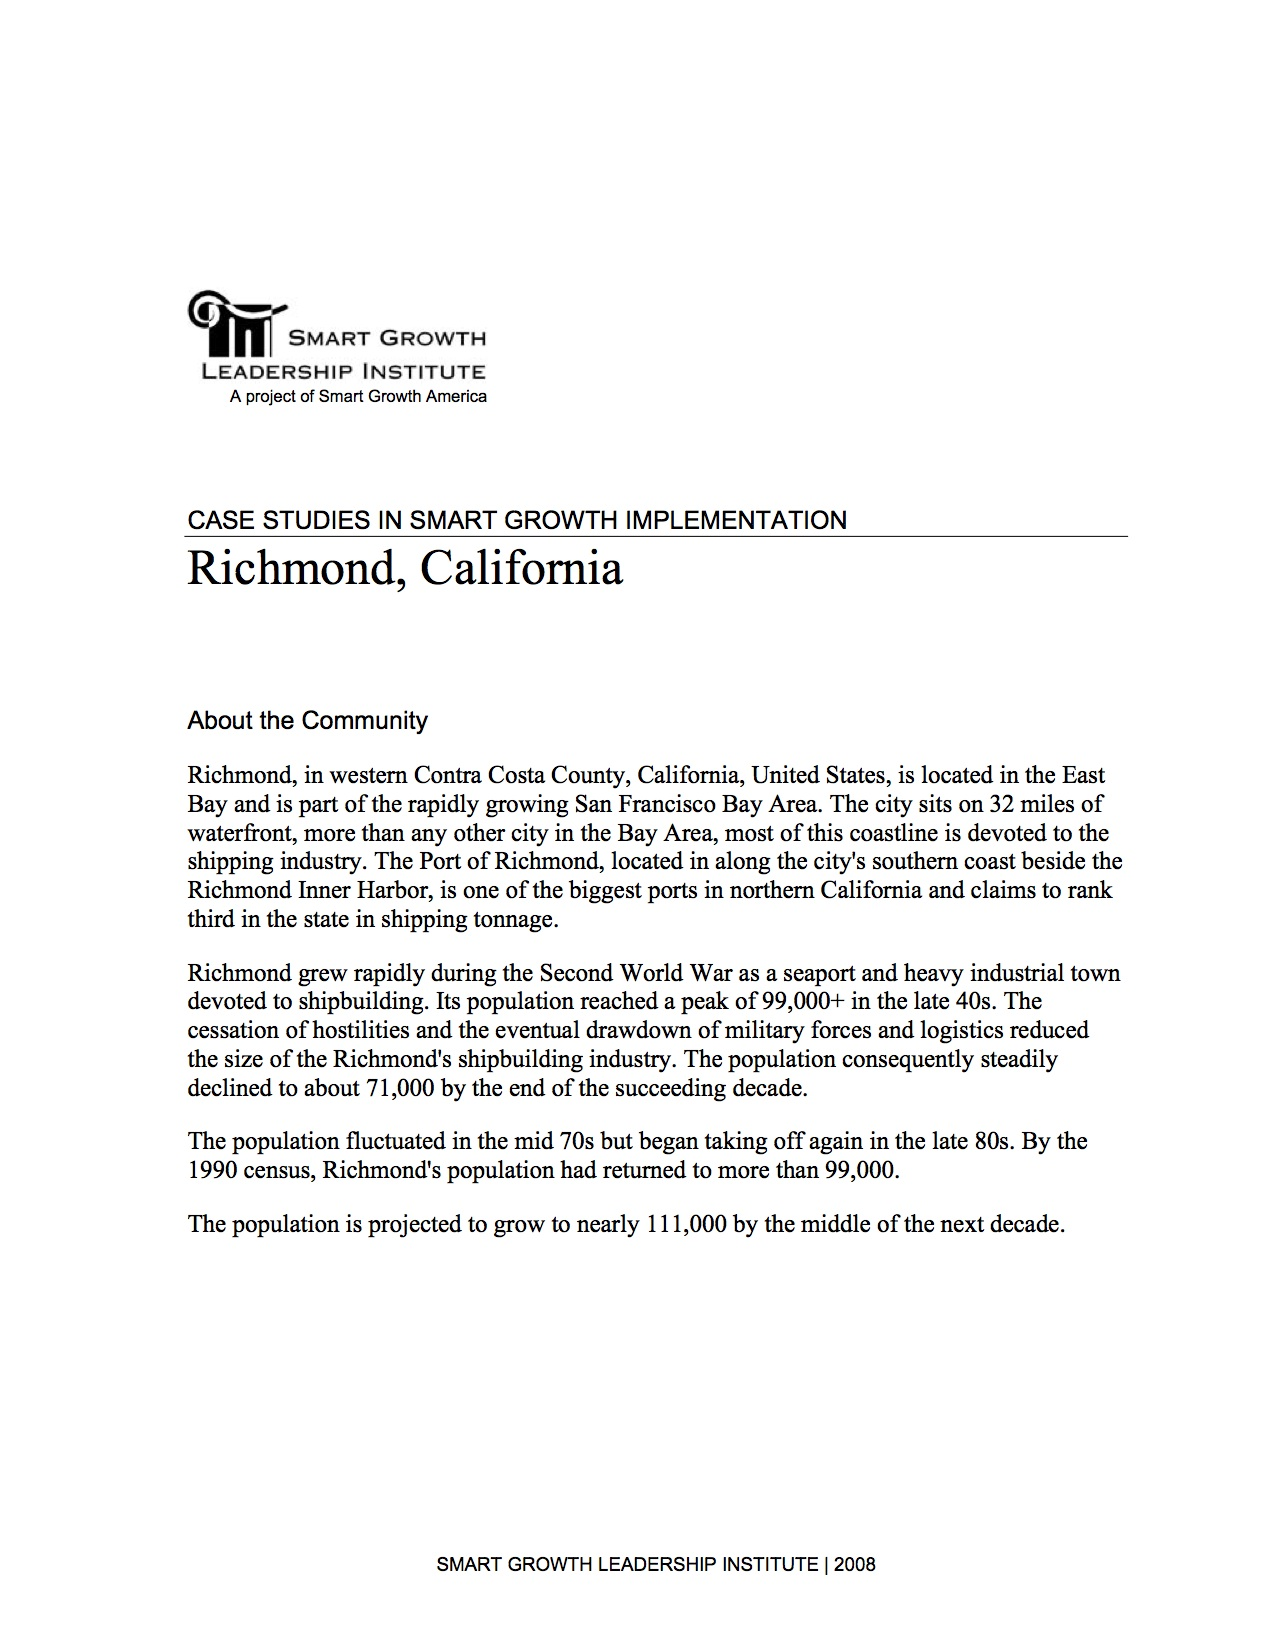 Case Studies in Smart Growth Implementation: Richmond, California